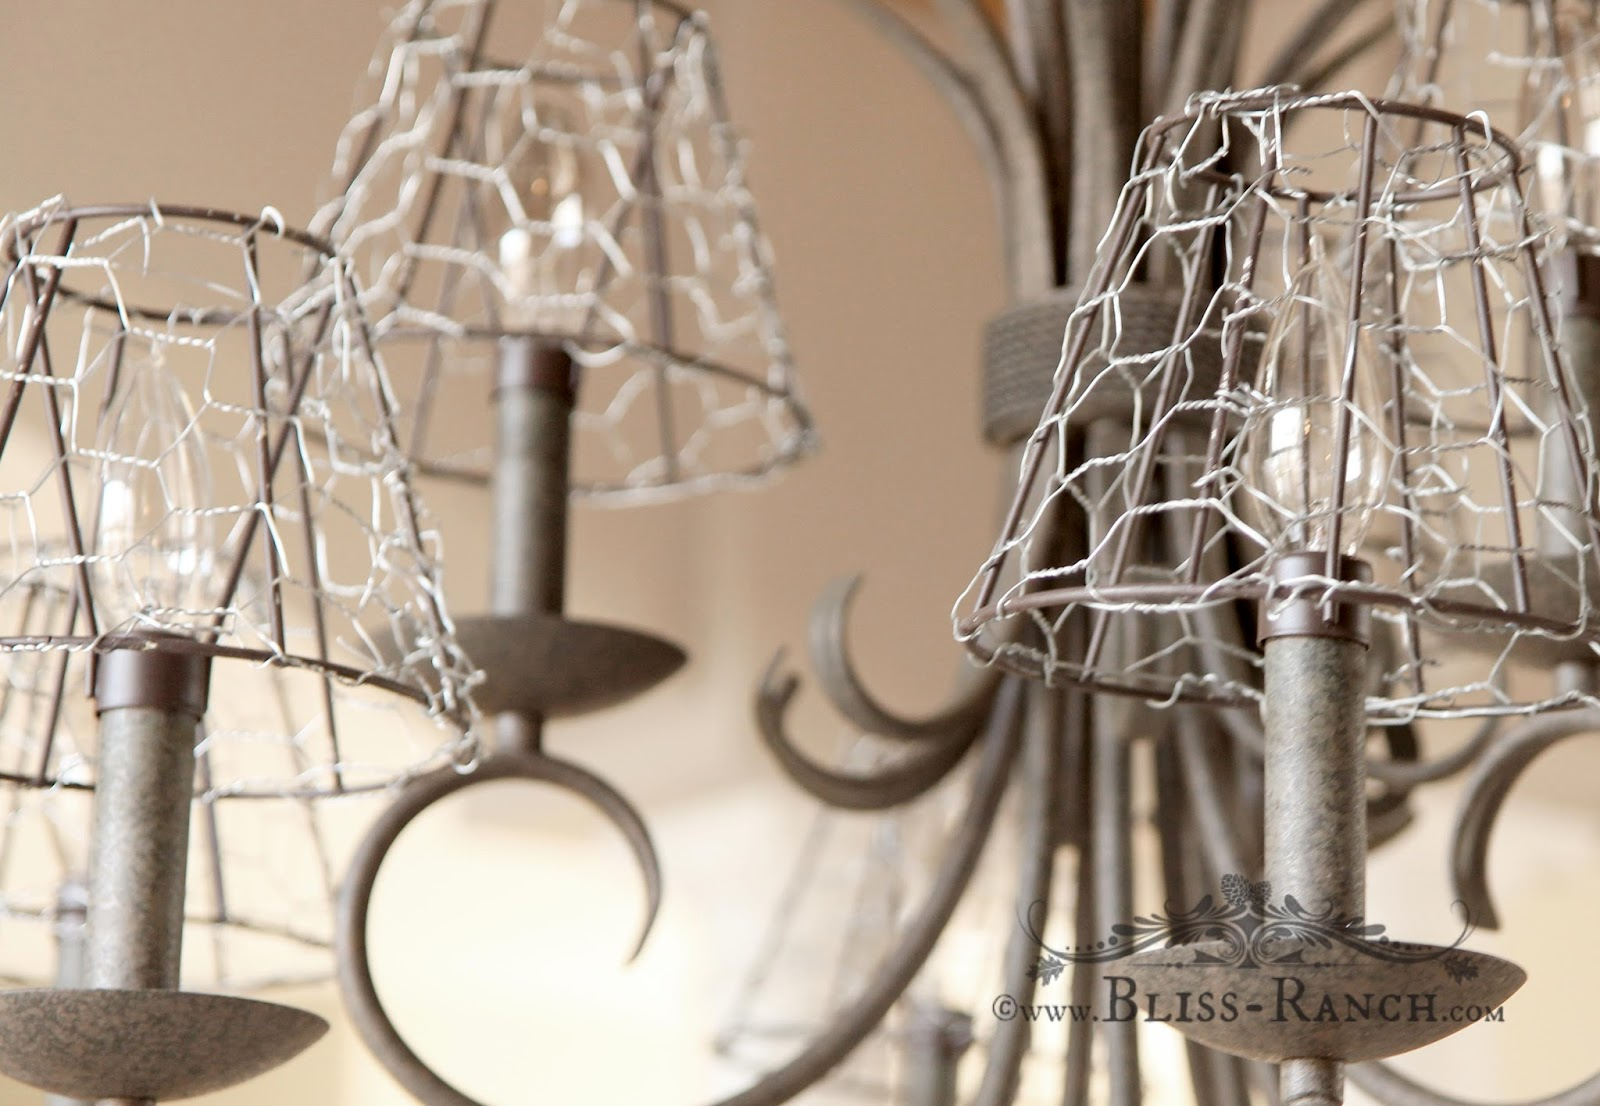 Chicken Wire Shade Covers, Bliss-Ranch.com